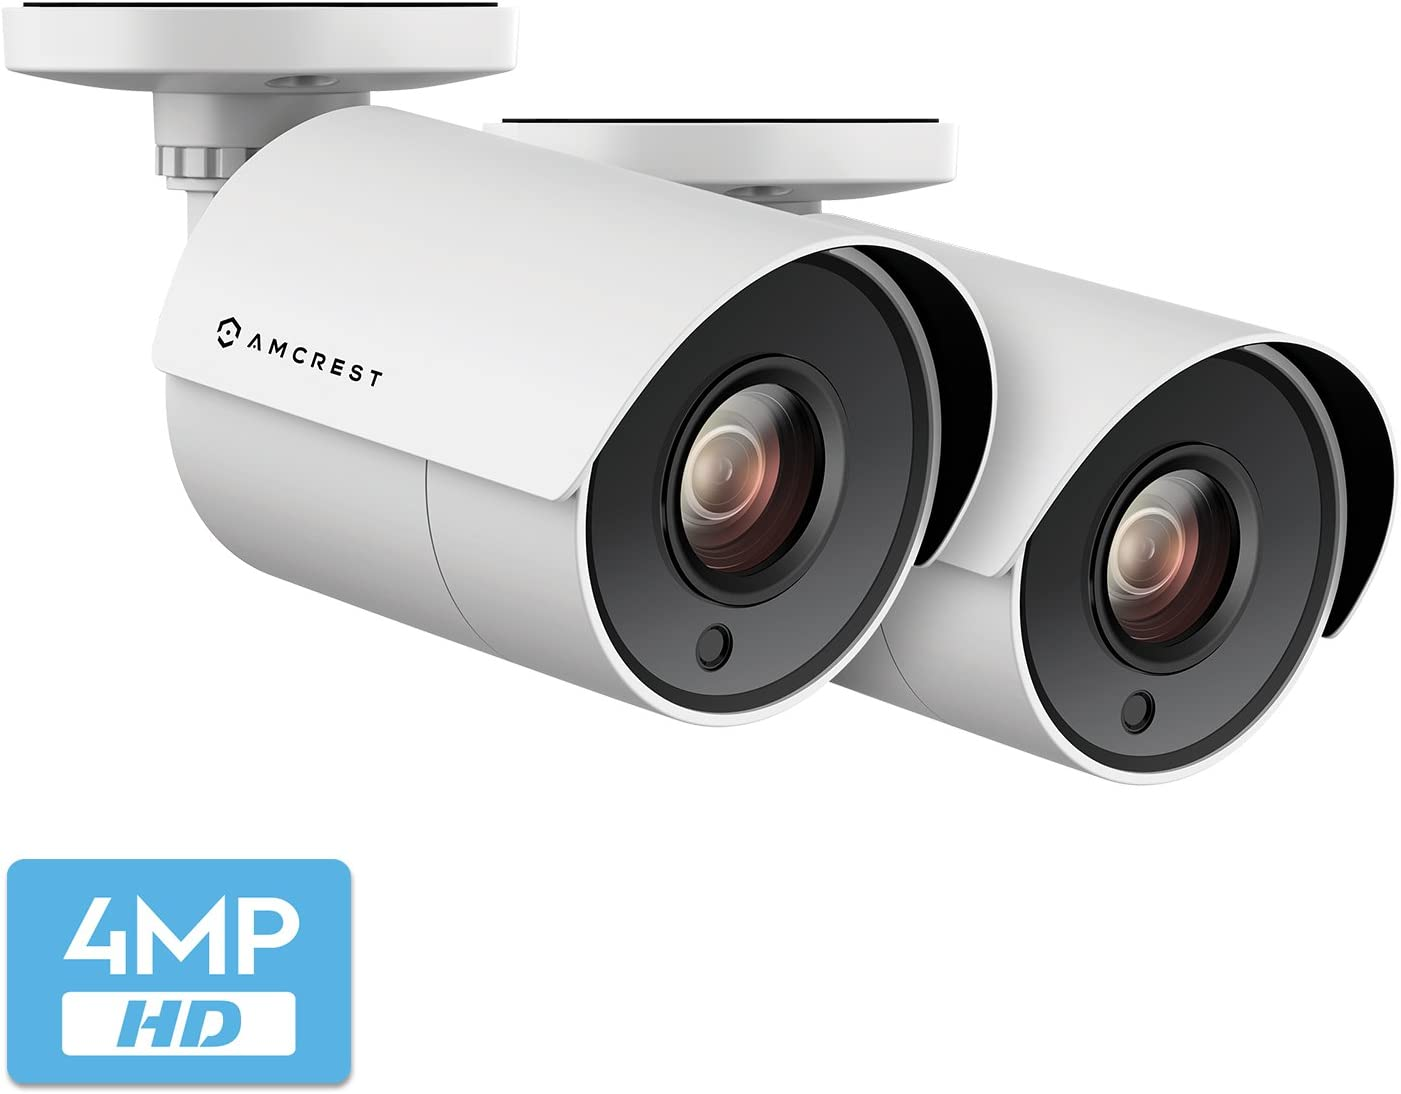 2-Pack Amcrest UltraHD 4-Megapixel Bullet Outdoor Security Camera, 4MP 2688x1440P, Heavy Duty Housing, 2.8mm Lens 100° Wide Angle, White (2PACK-AMC4MBC28P-W) 617nYnjE7BL